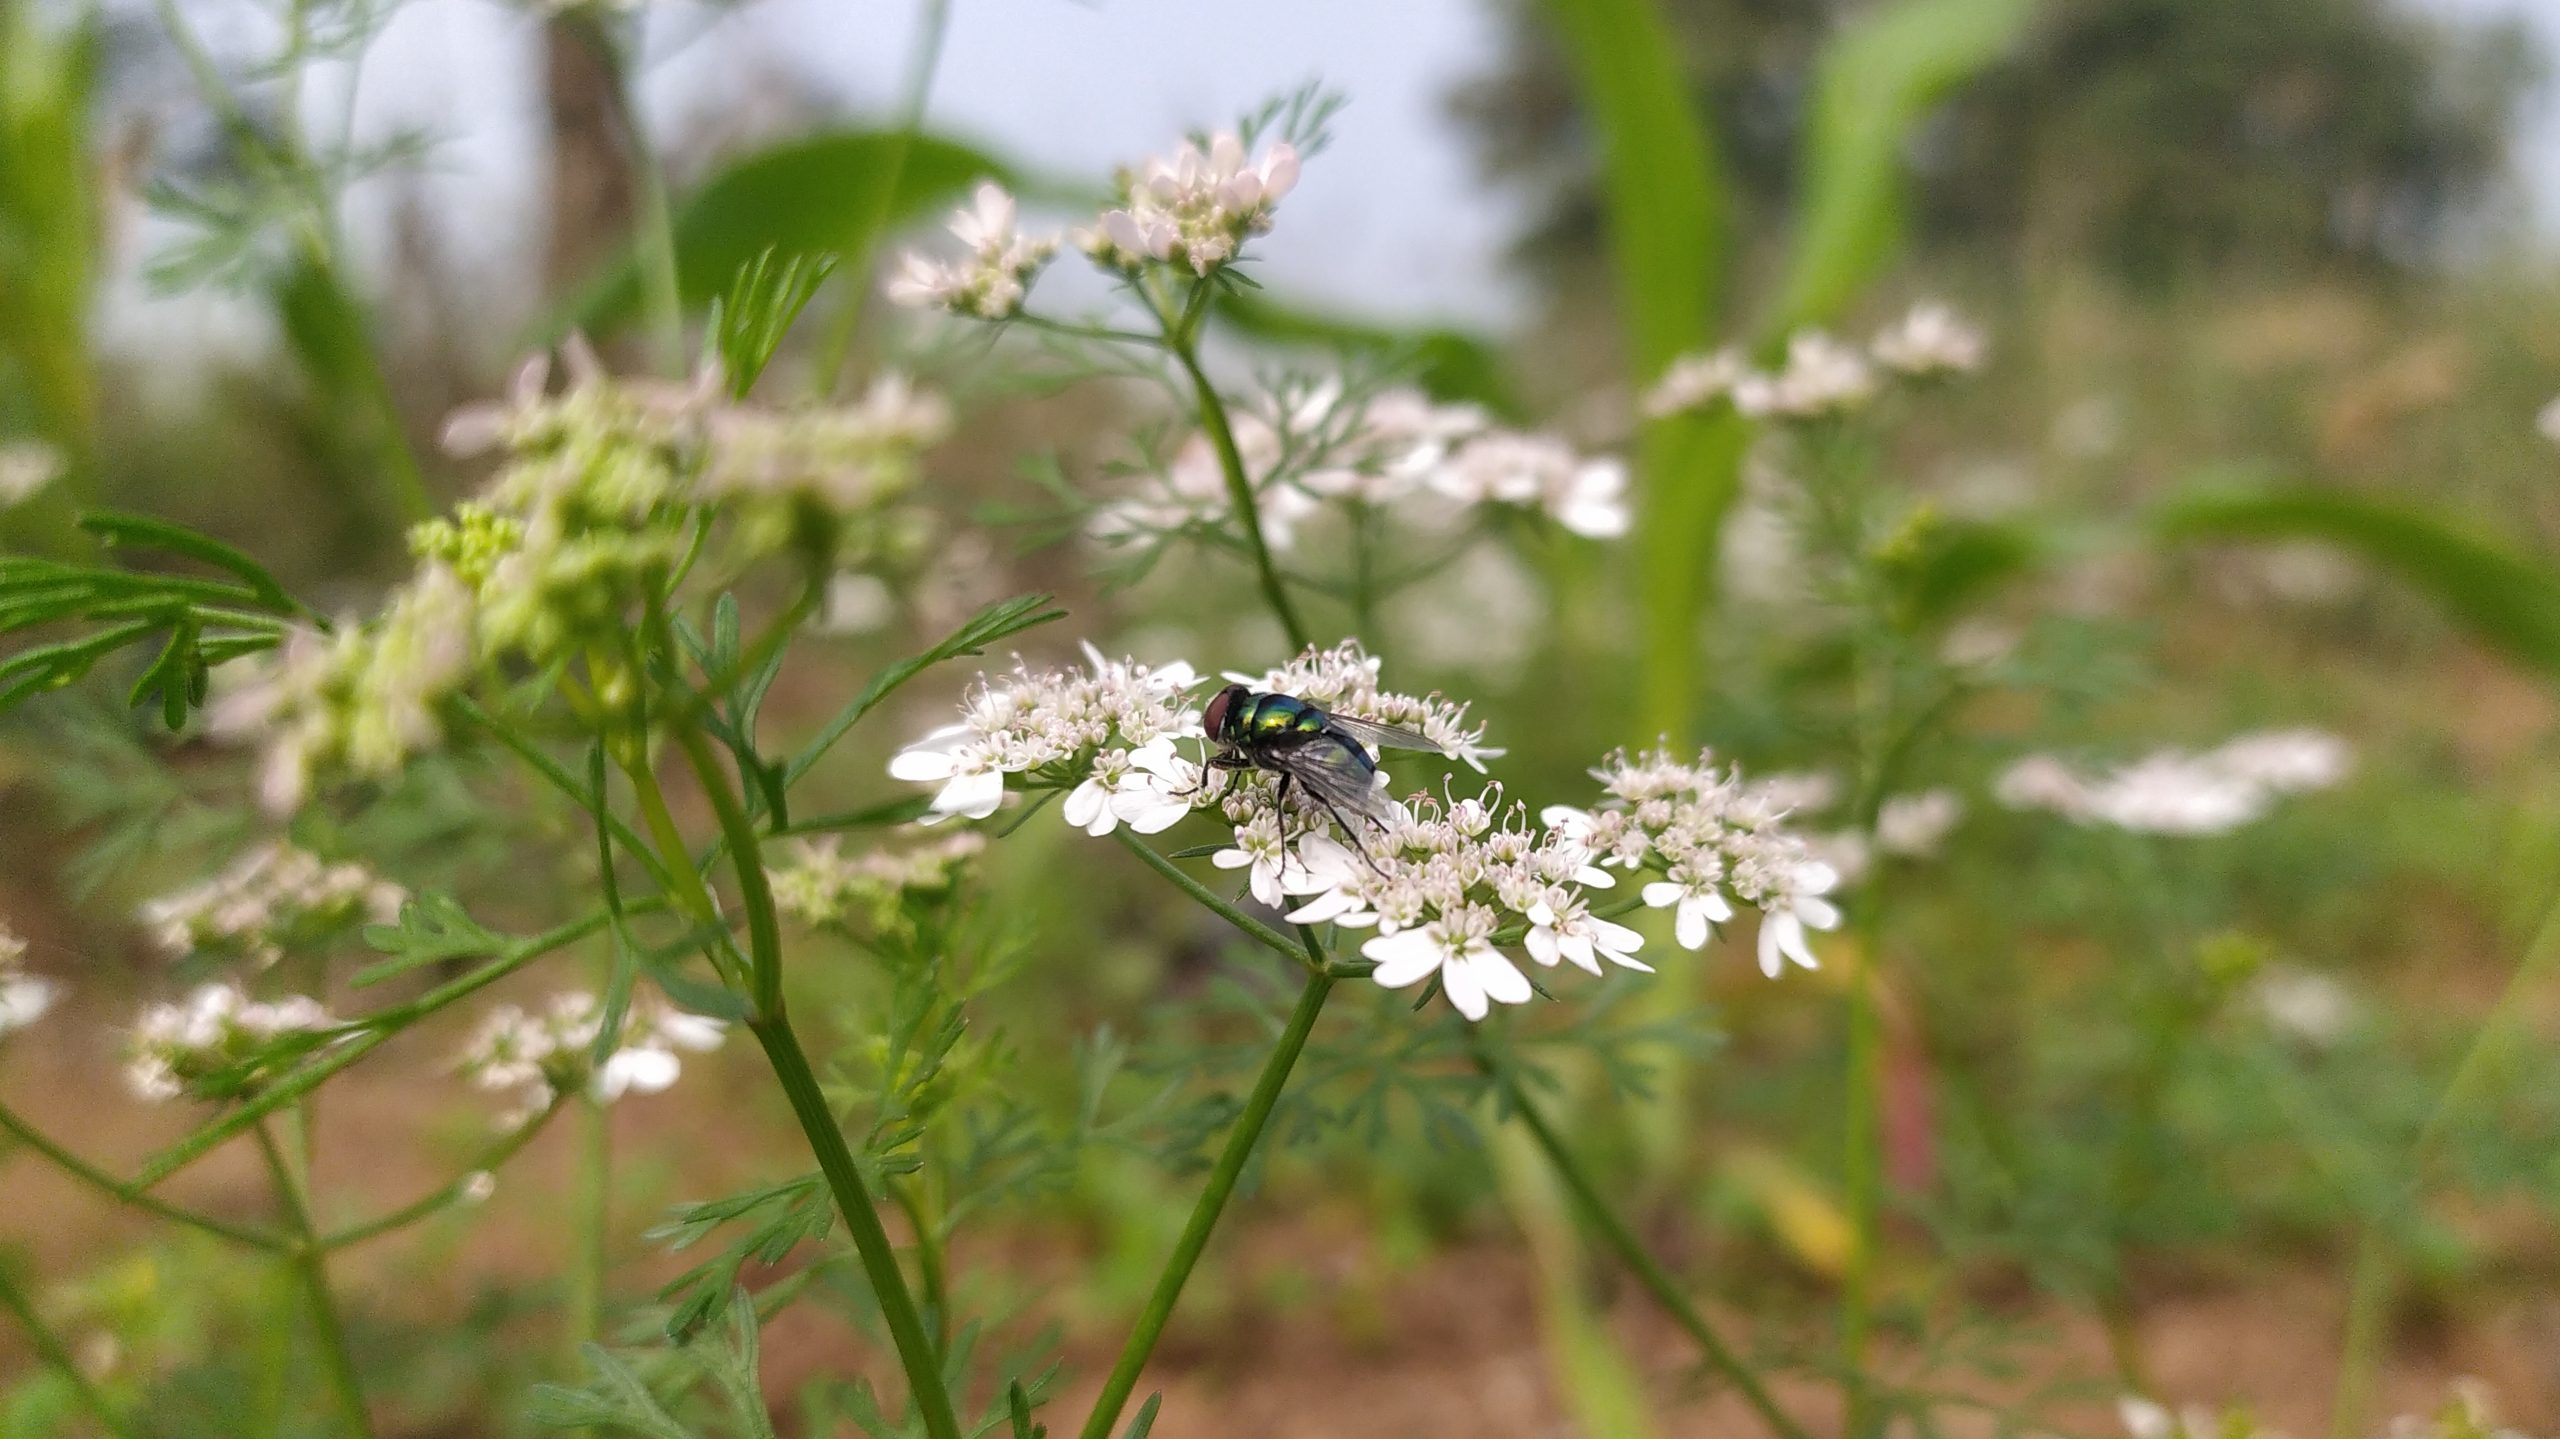 Housefly on plant